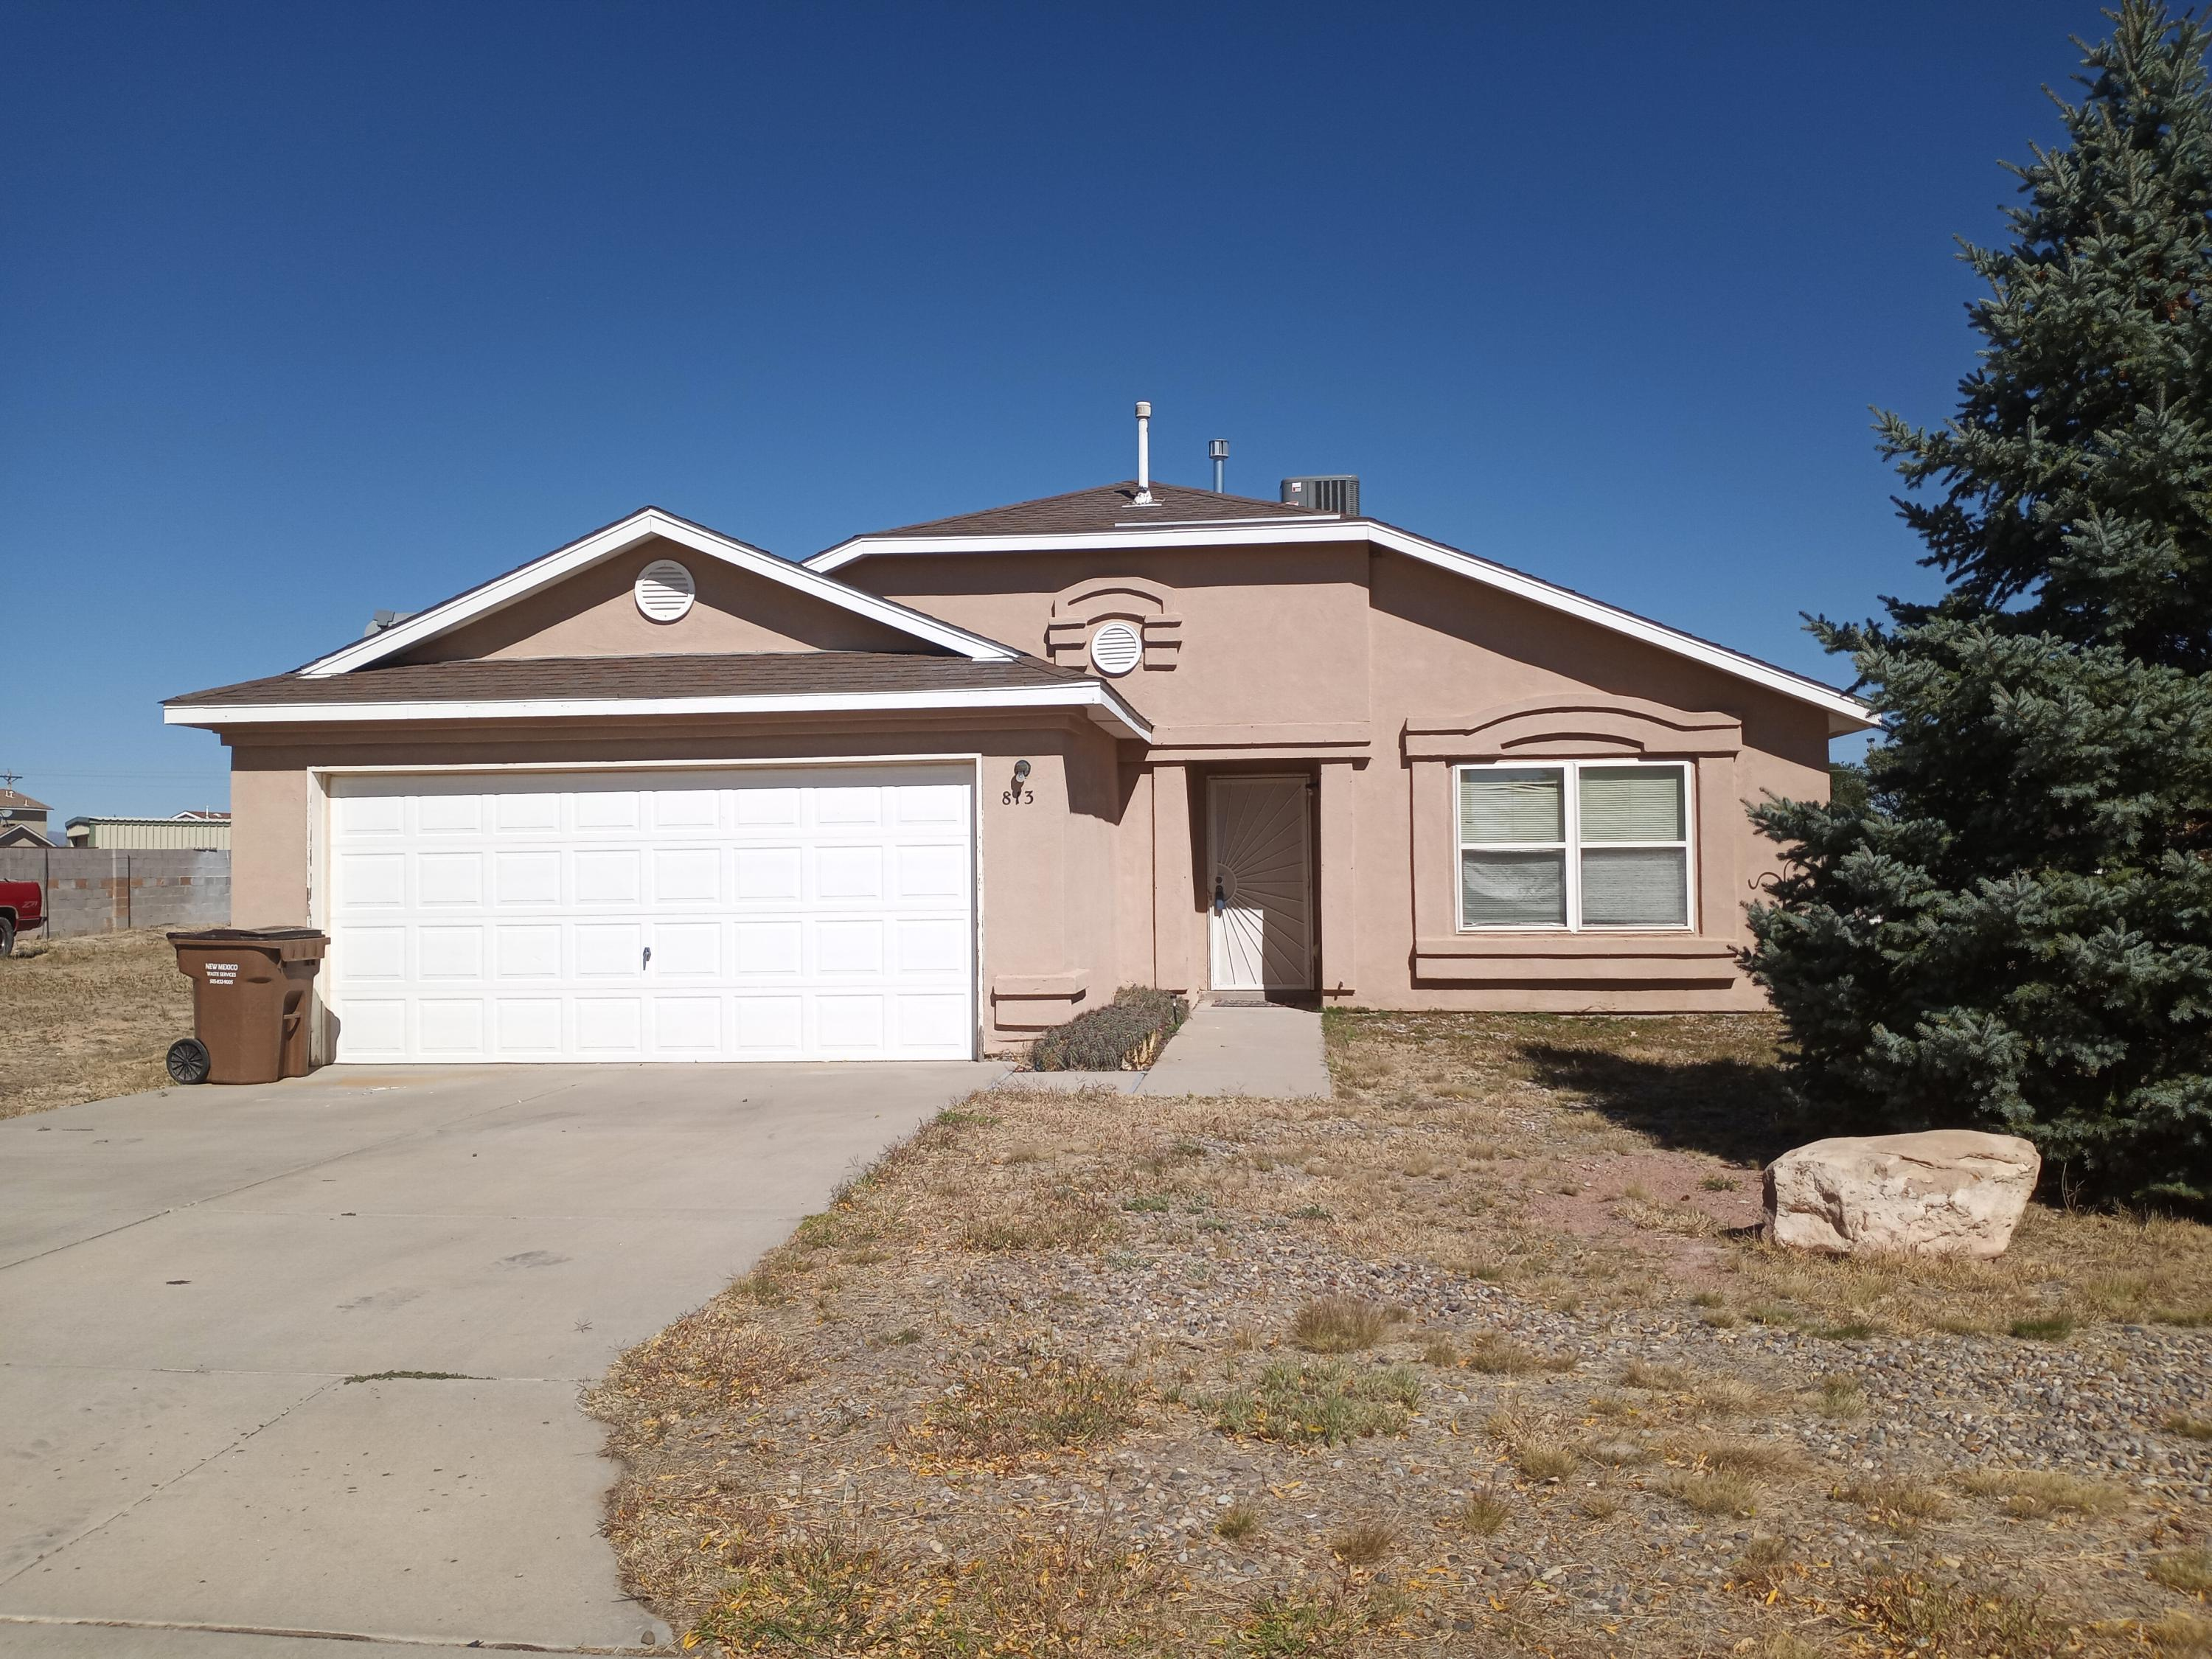 Move in ready Artistic home in Moriarty, large corner lot, back yard entry. Open living area, no carpet, 3 bedroom and 2 full baths. Water heater brand new, recently upgraded heating/ cooling. Don't miss this one!